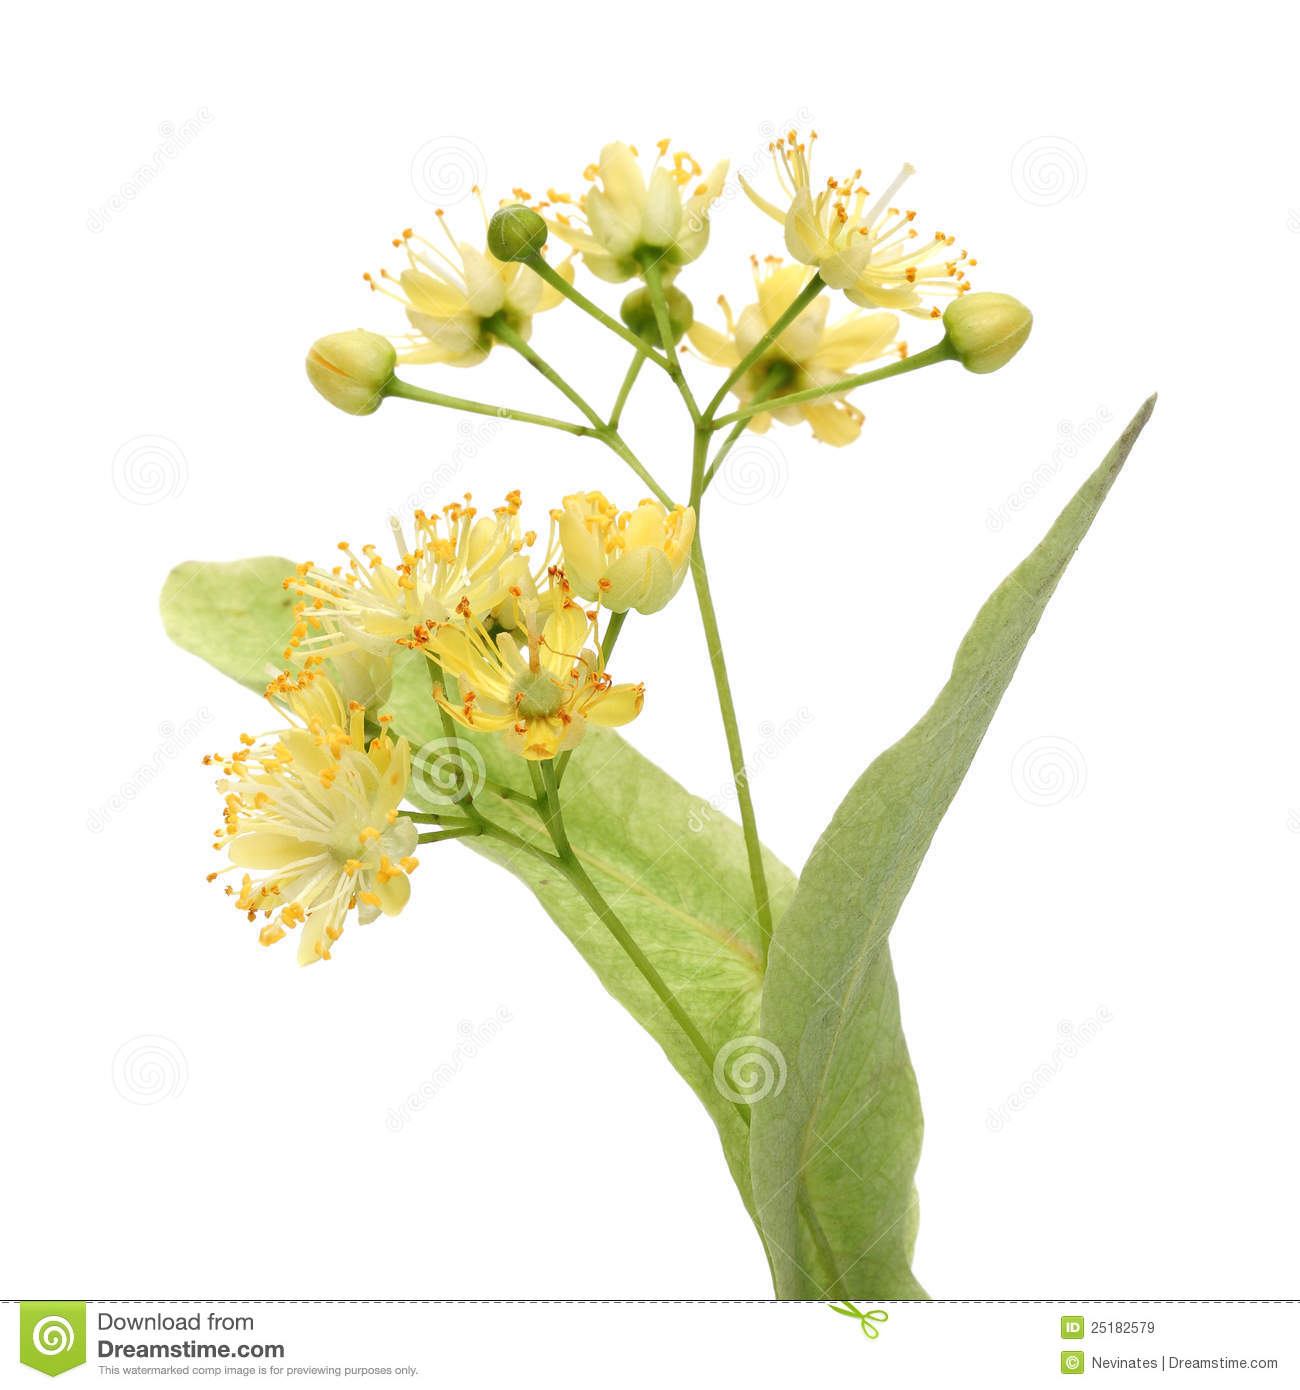 Yellow linden flower stock image image of infused freshness 25182579 download yellow linden flower stock image image of infused freshness 25182579 mightylinksfo